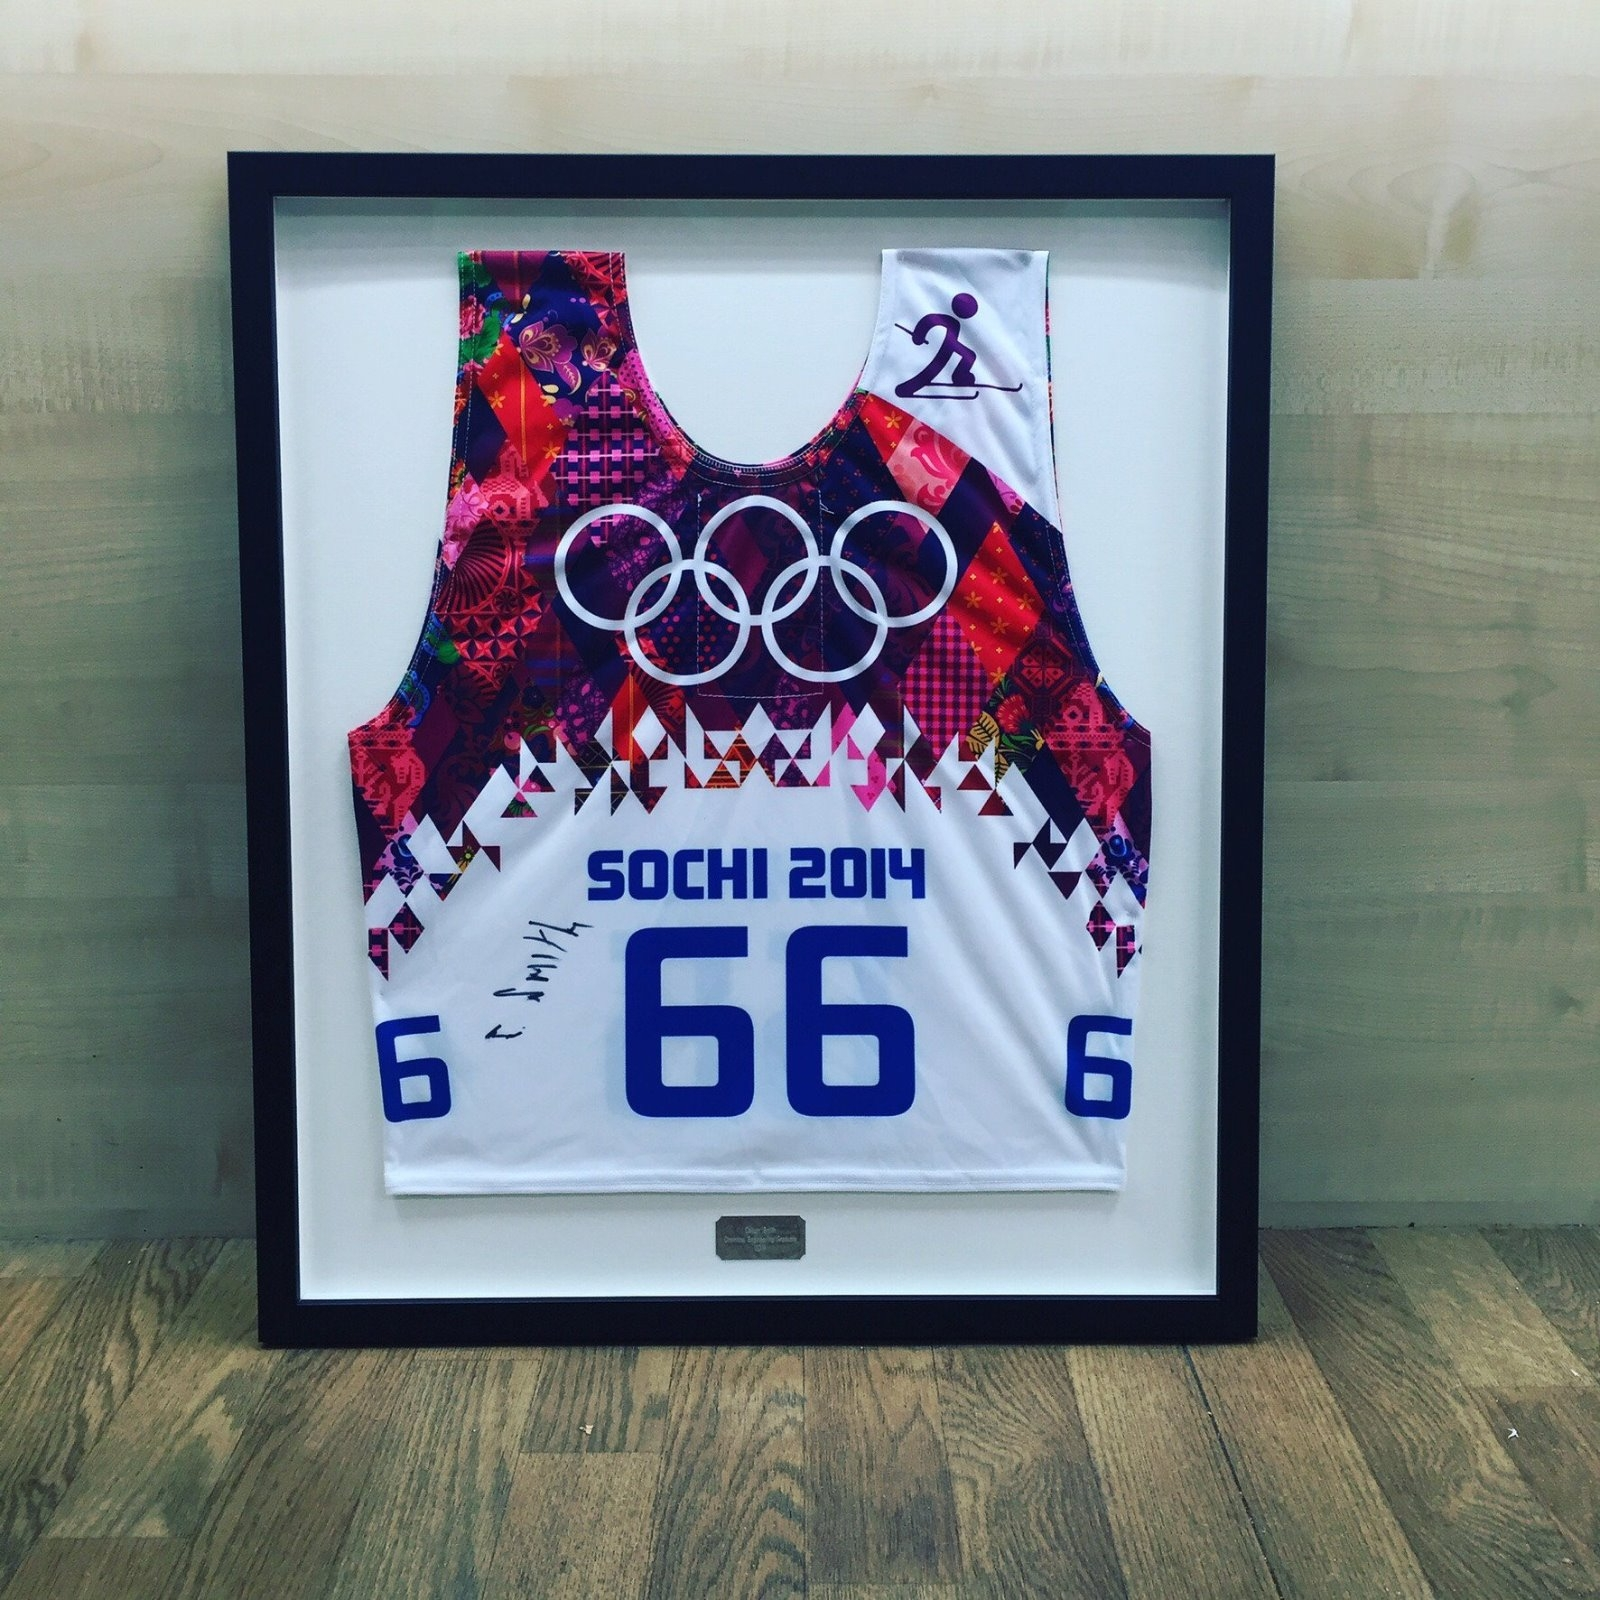 signed ski vest from Sochi 2014